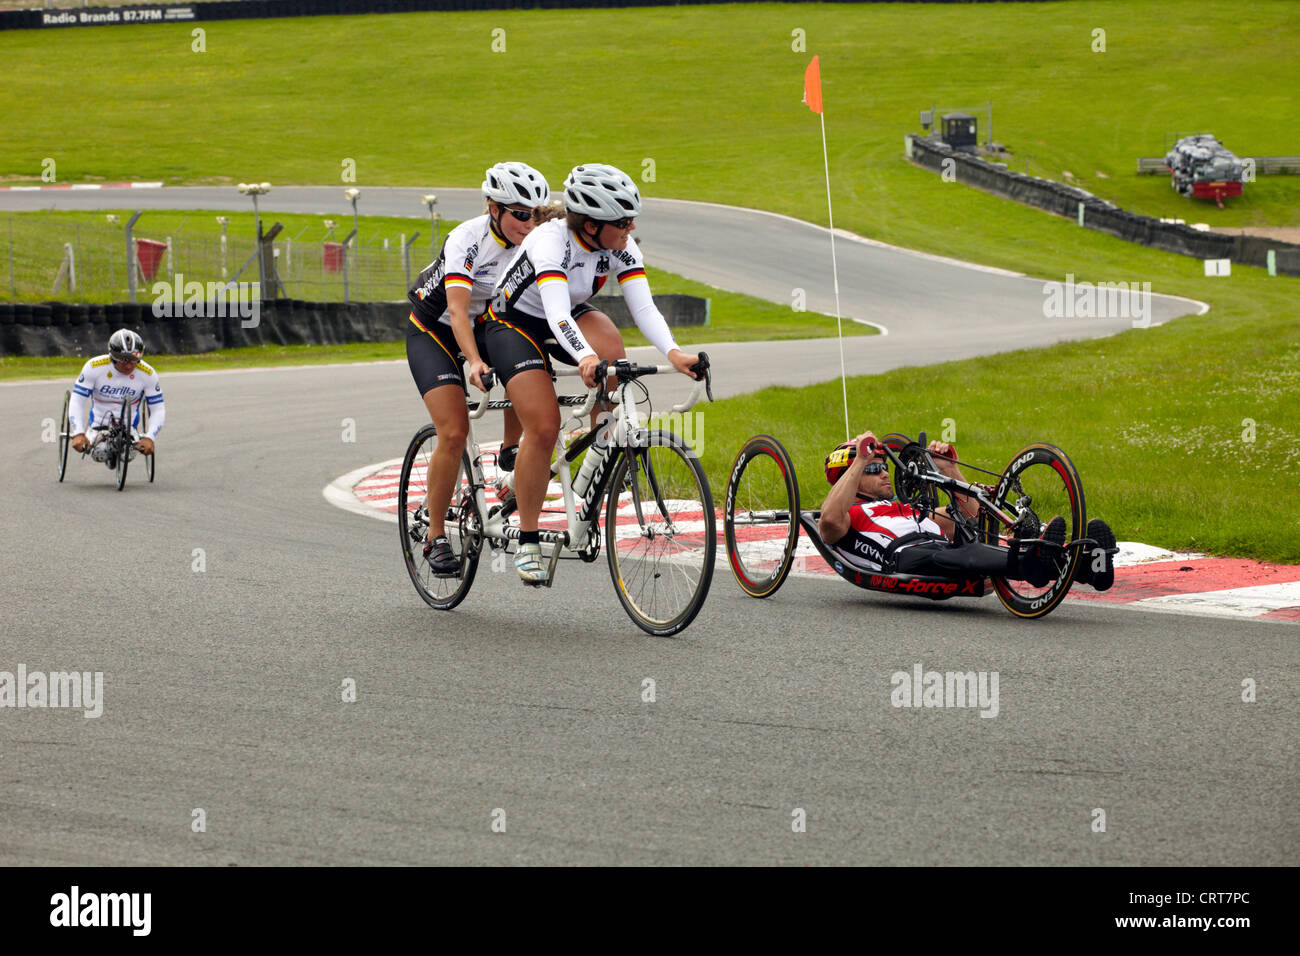 Para cyclists at the paralympic training day at Brands Hatch, Kent, UK. - Stock Image